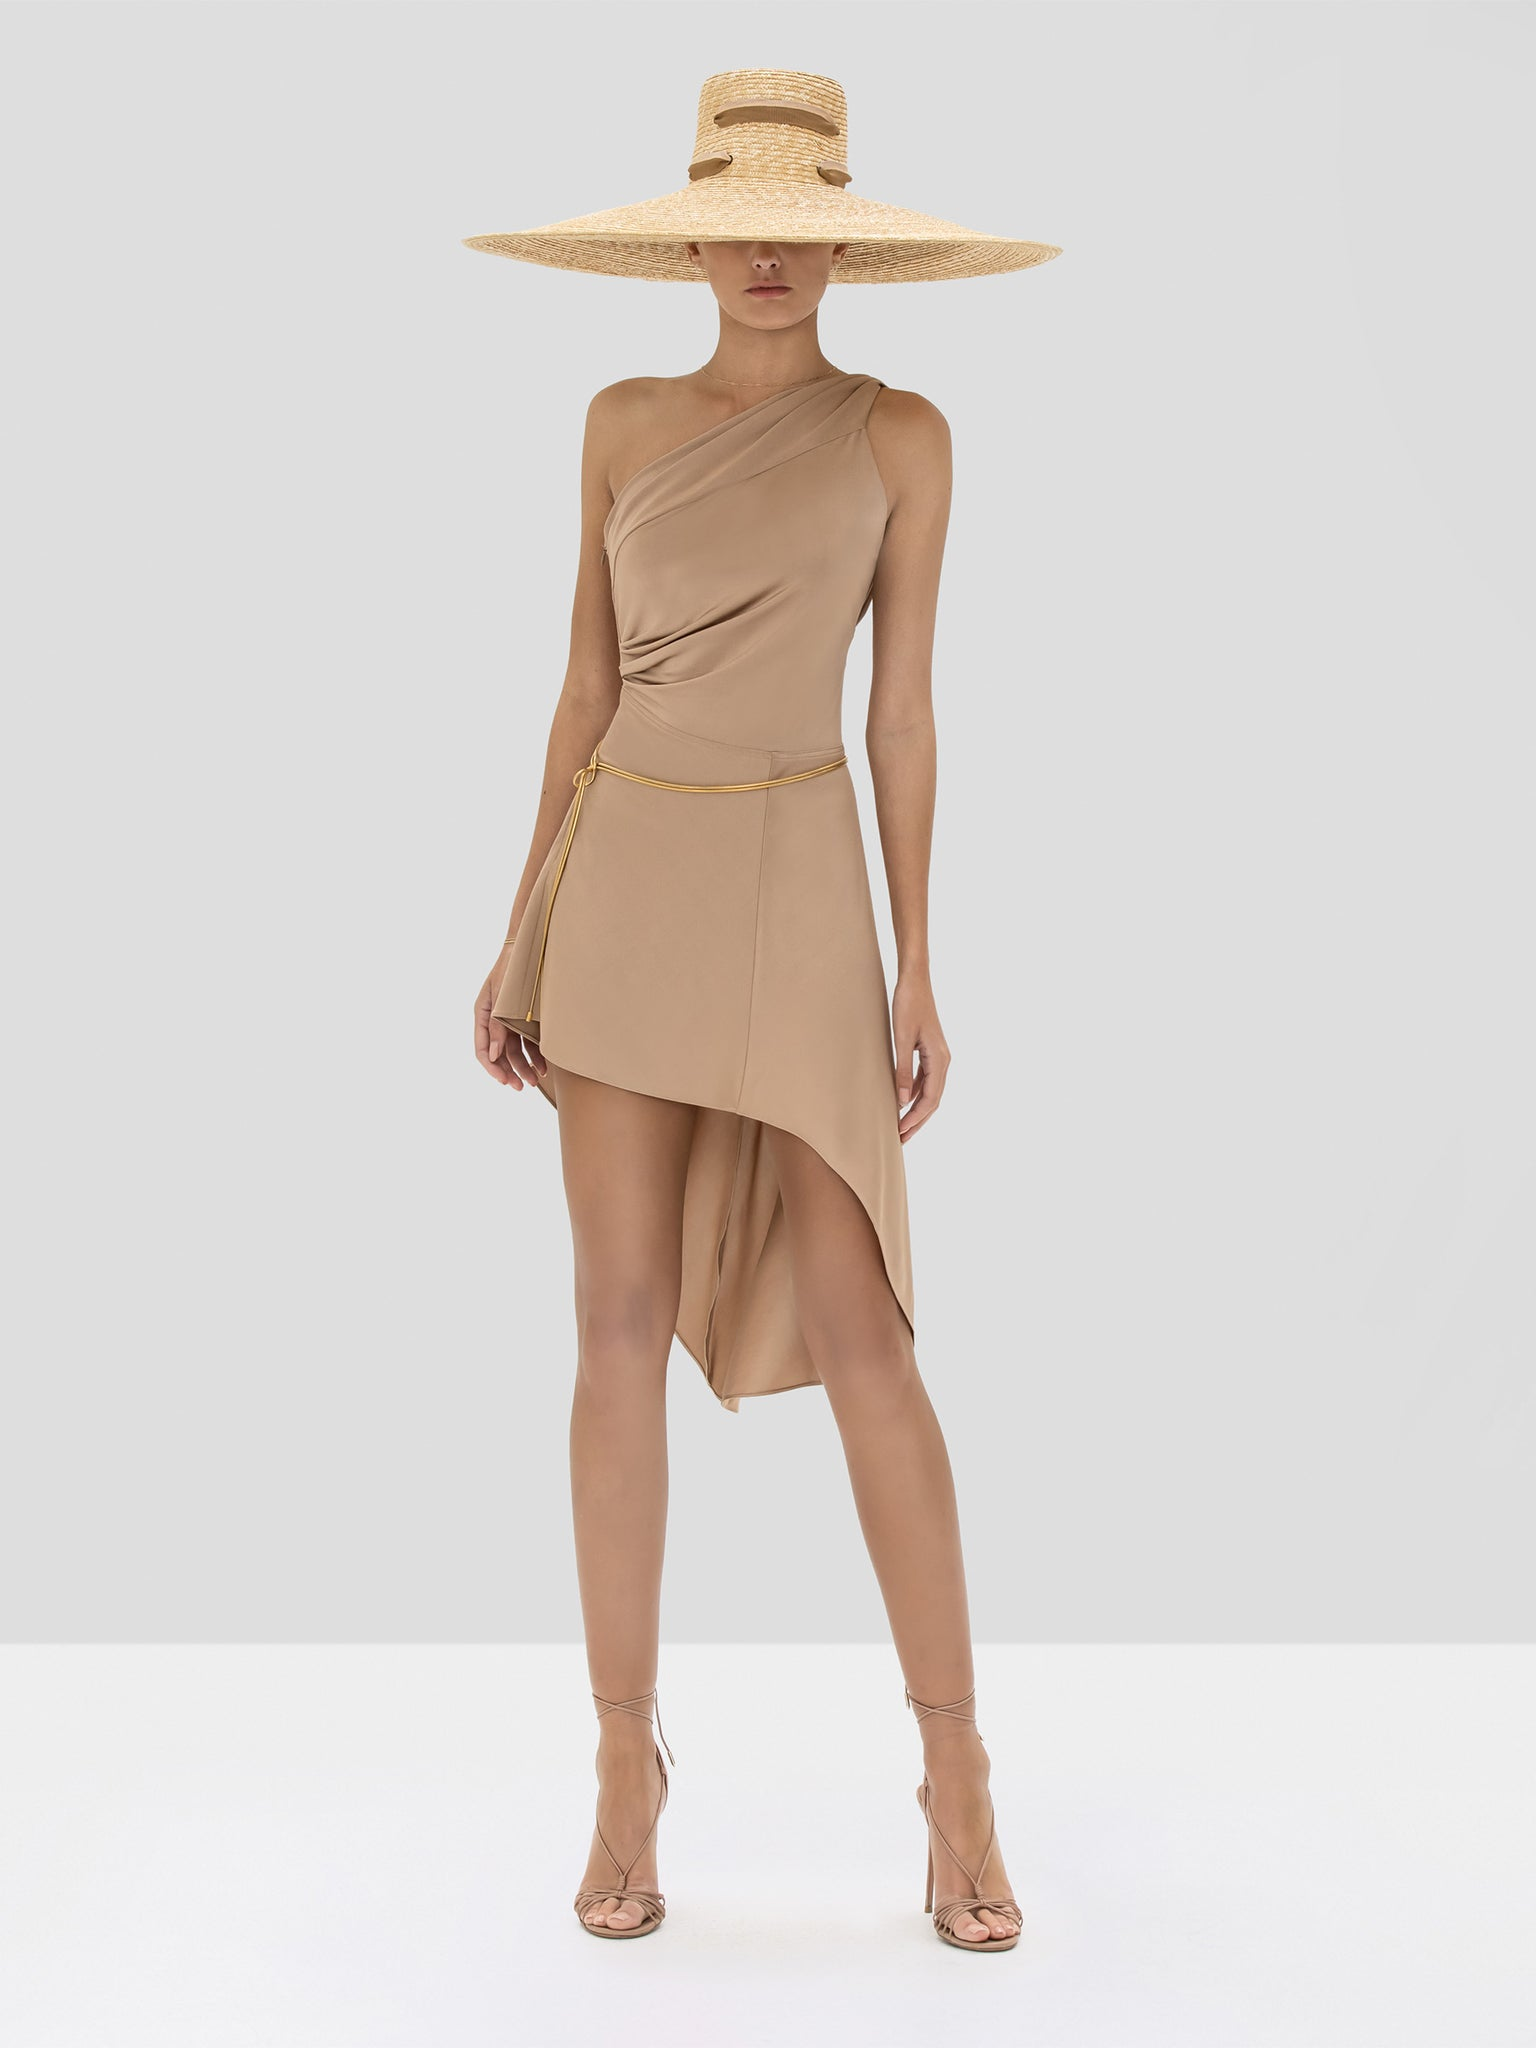 Alexis Mellie Dress in Tan from the Spring Summer 2020 Collection